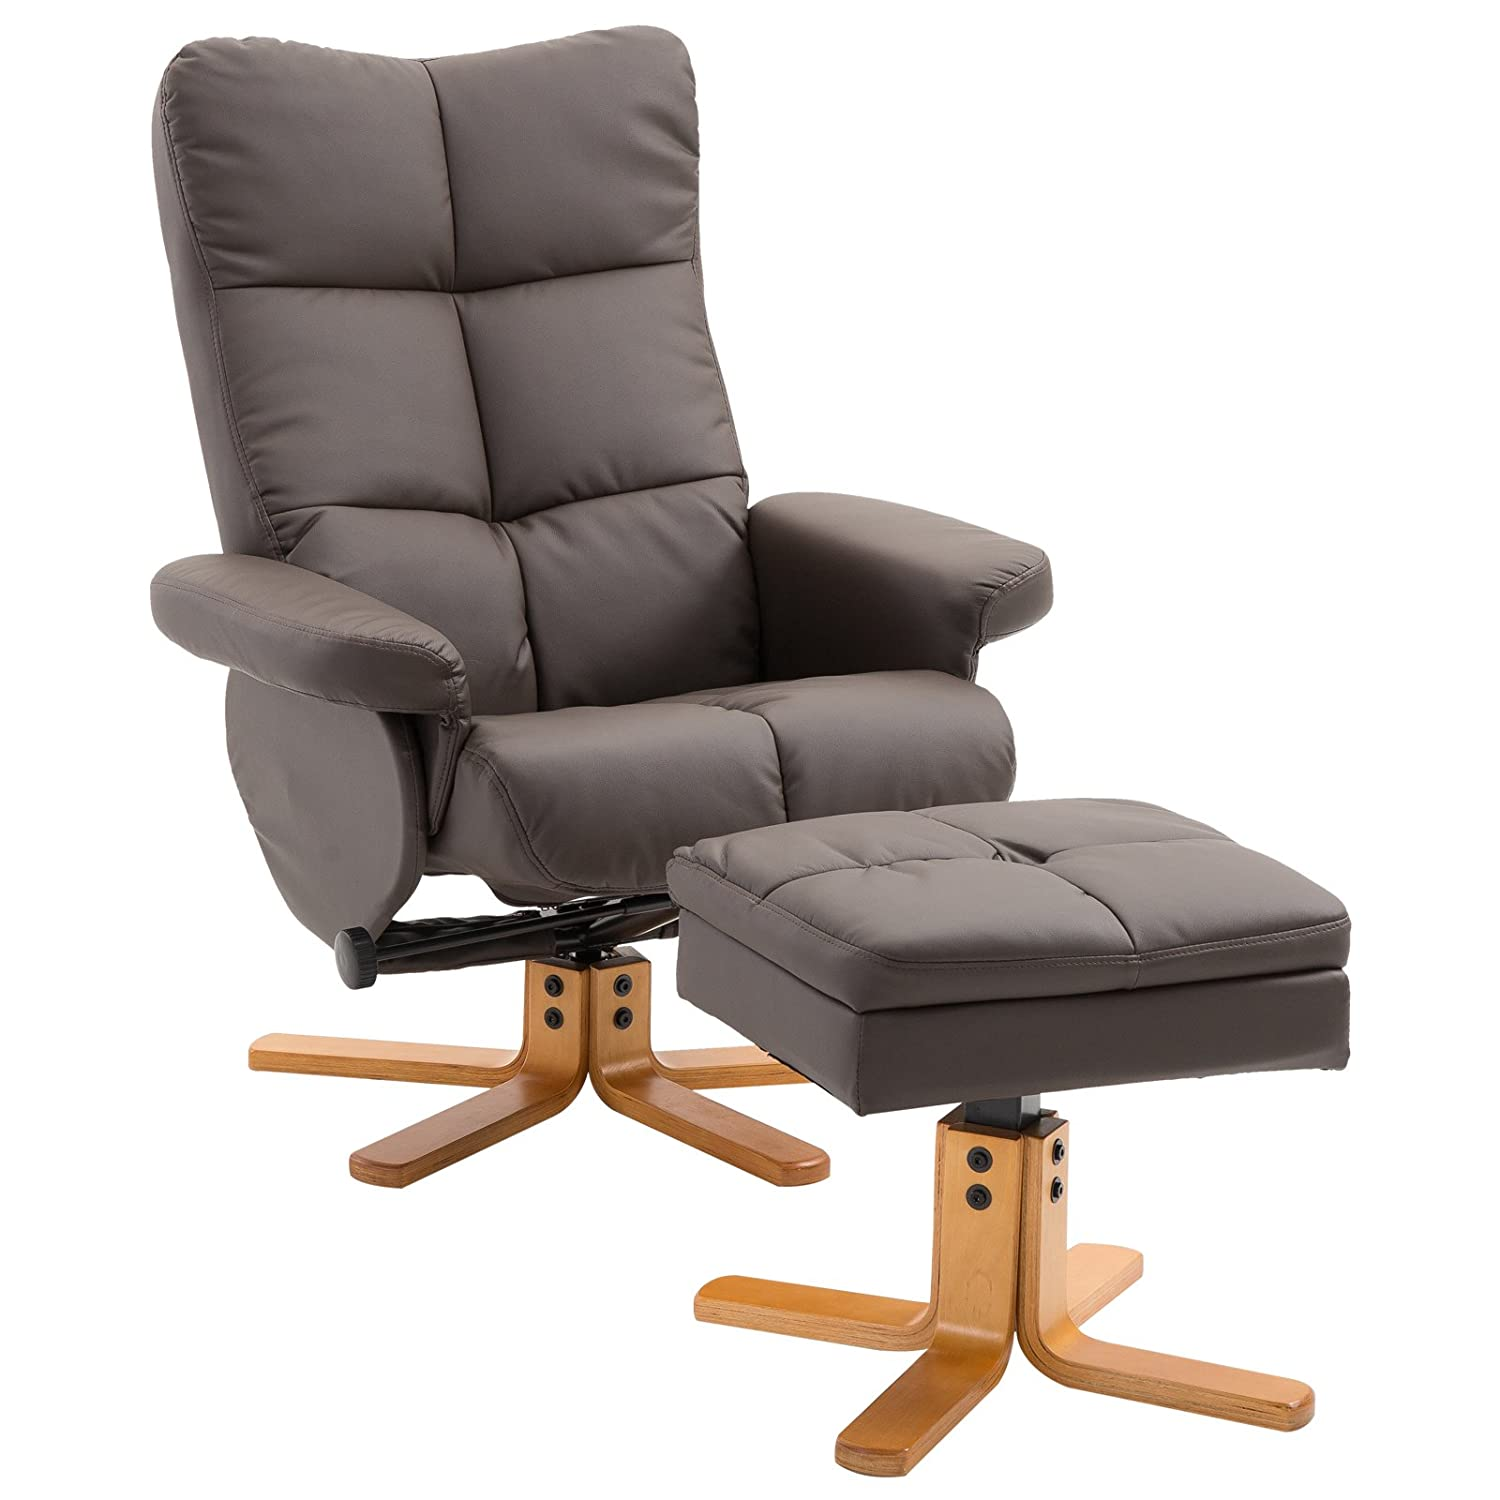 HOMCOM Leather Recliner and Ottoman Set Swivel Lounge Chair With Storage Footrest Wood Base Living Room Furniture Brown Aosom Canada CA833-3590231